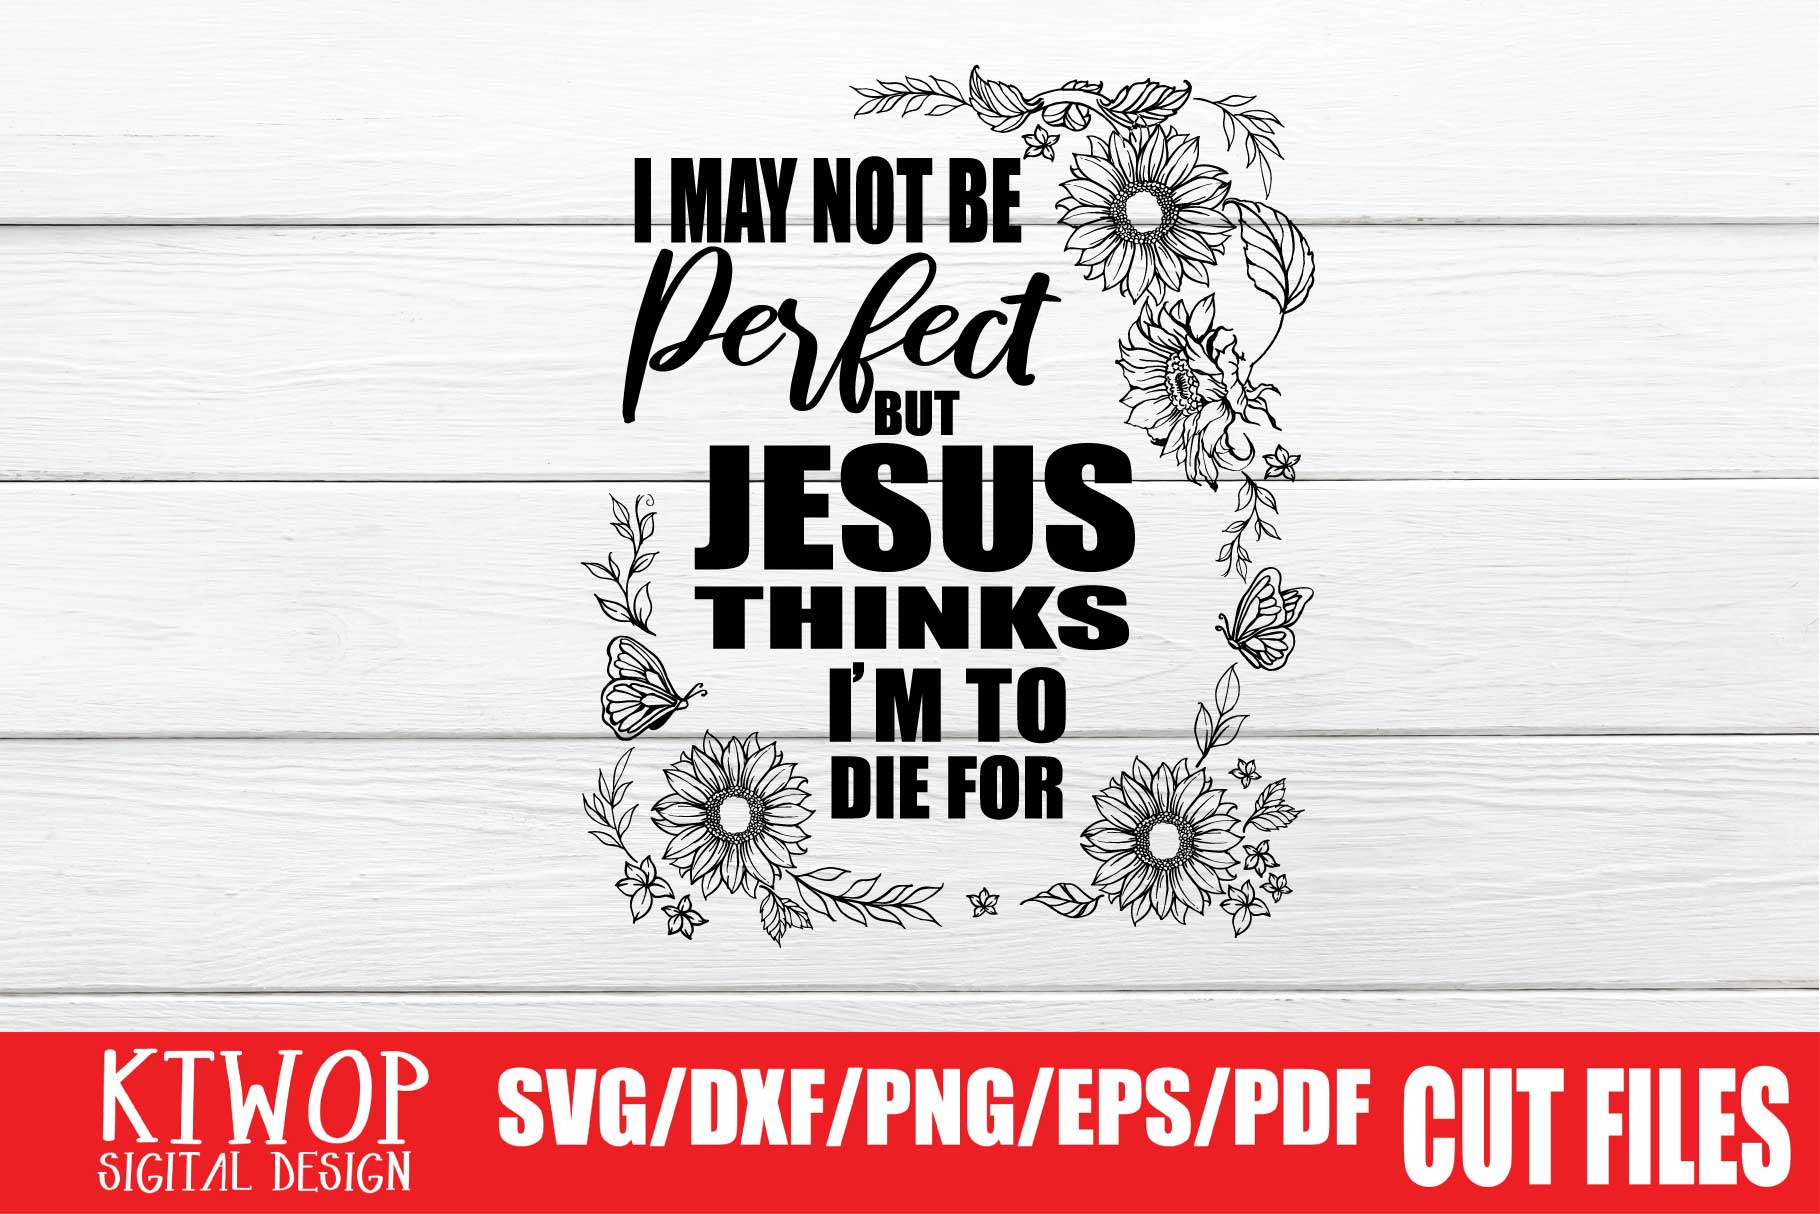 Download Free I May Not Be Perfect But Jesus Thinks I M To Die For Graphic By for Cricut Explore, Silhouette and other cutting machines.